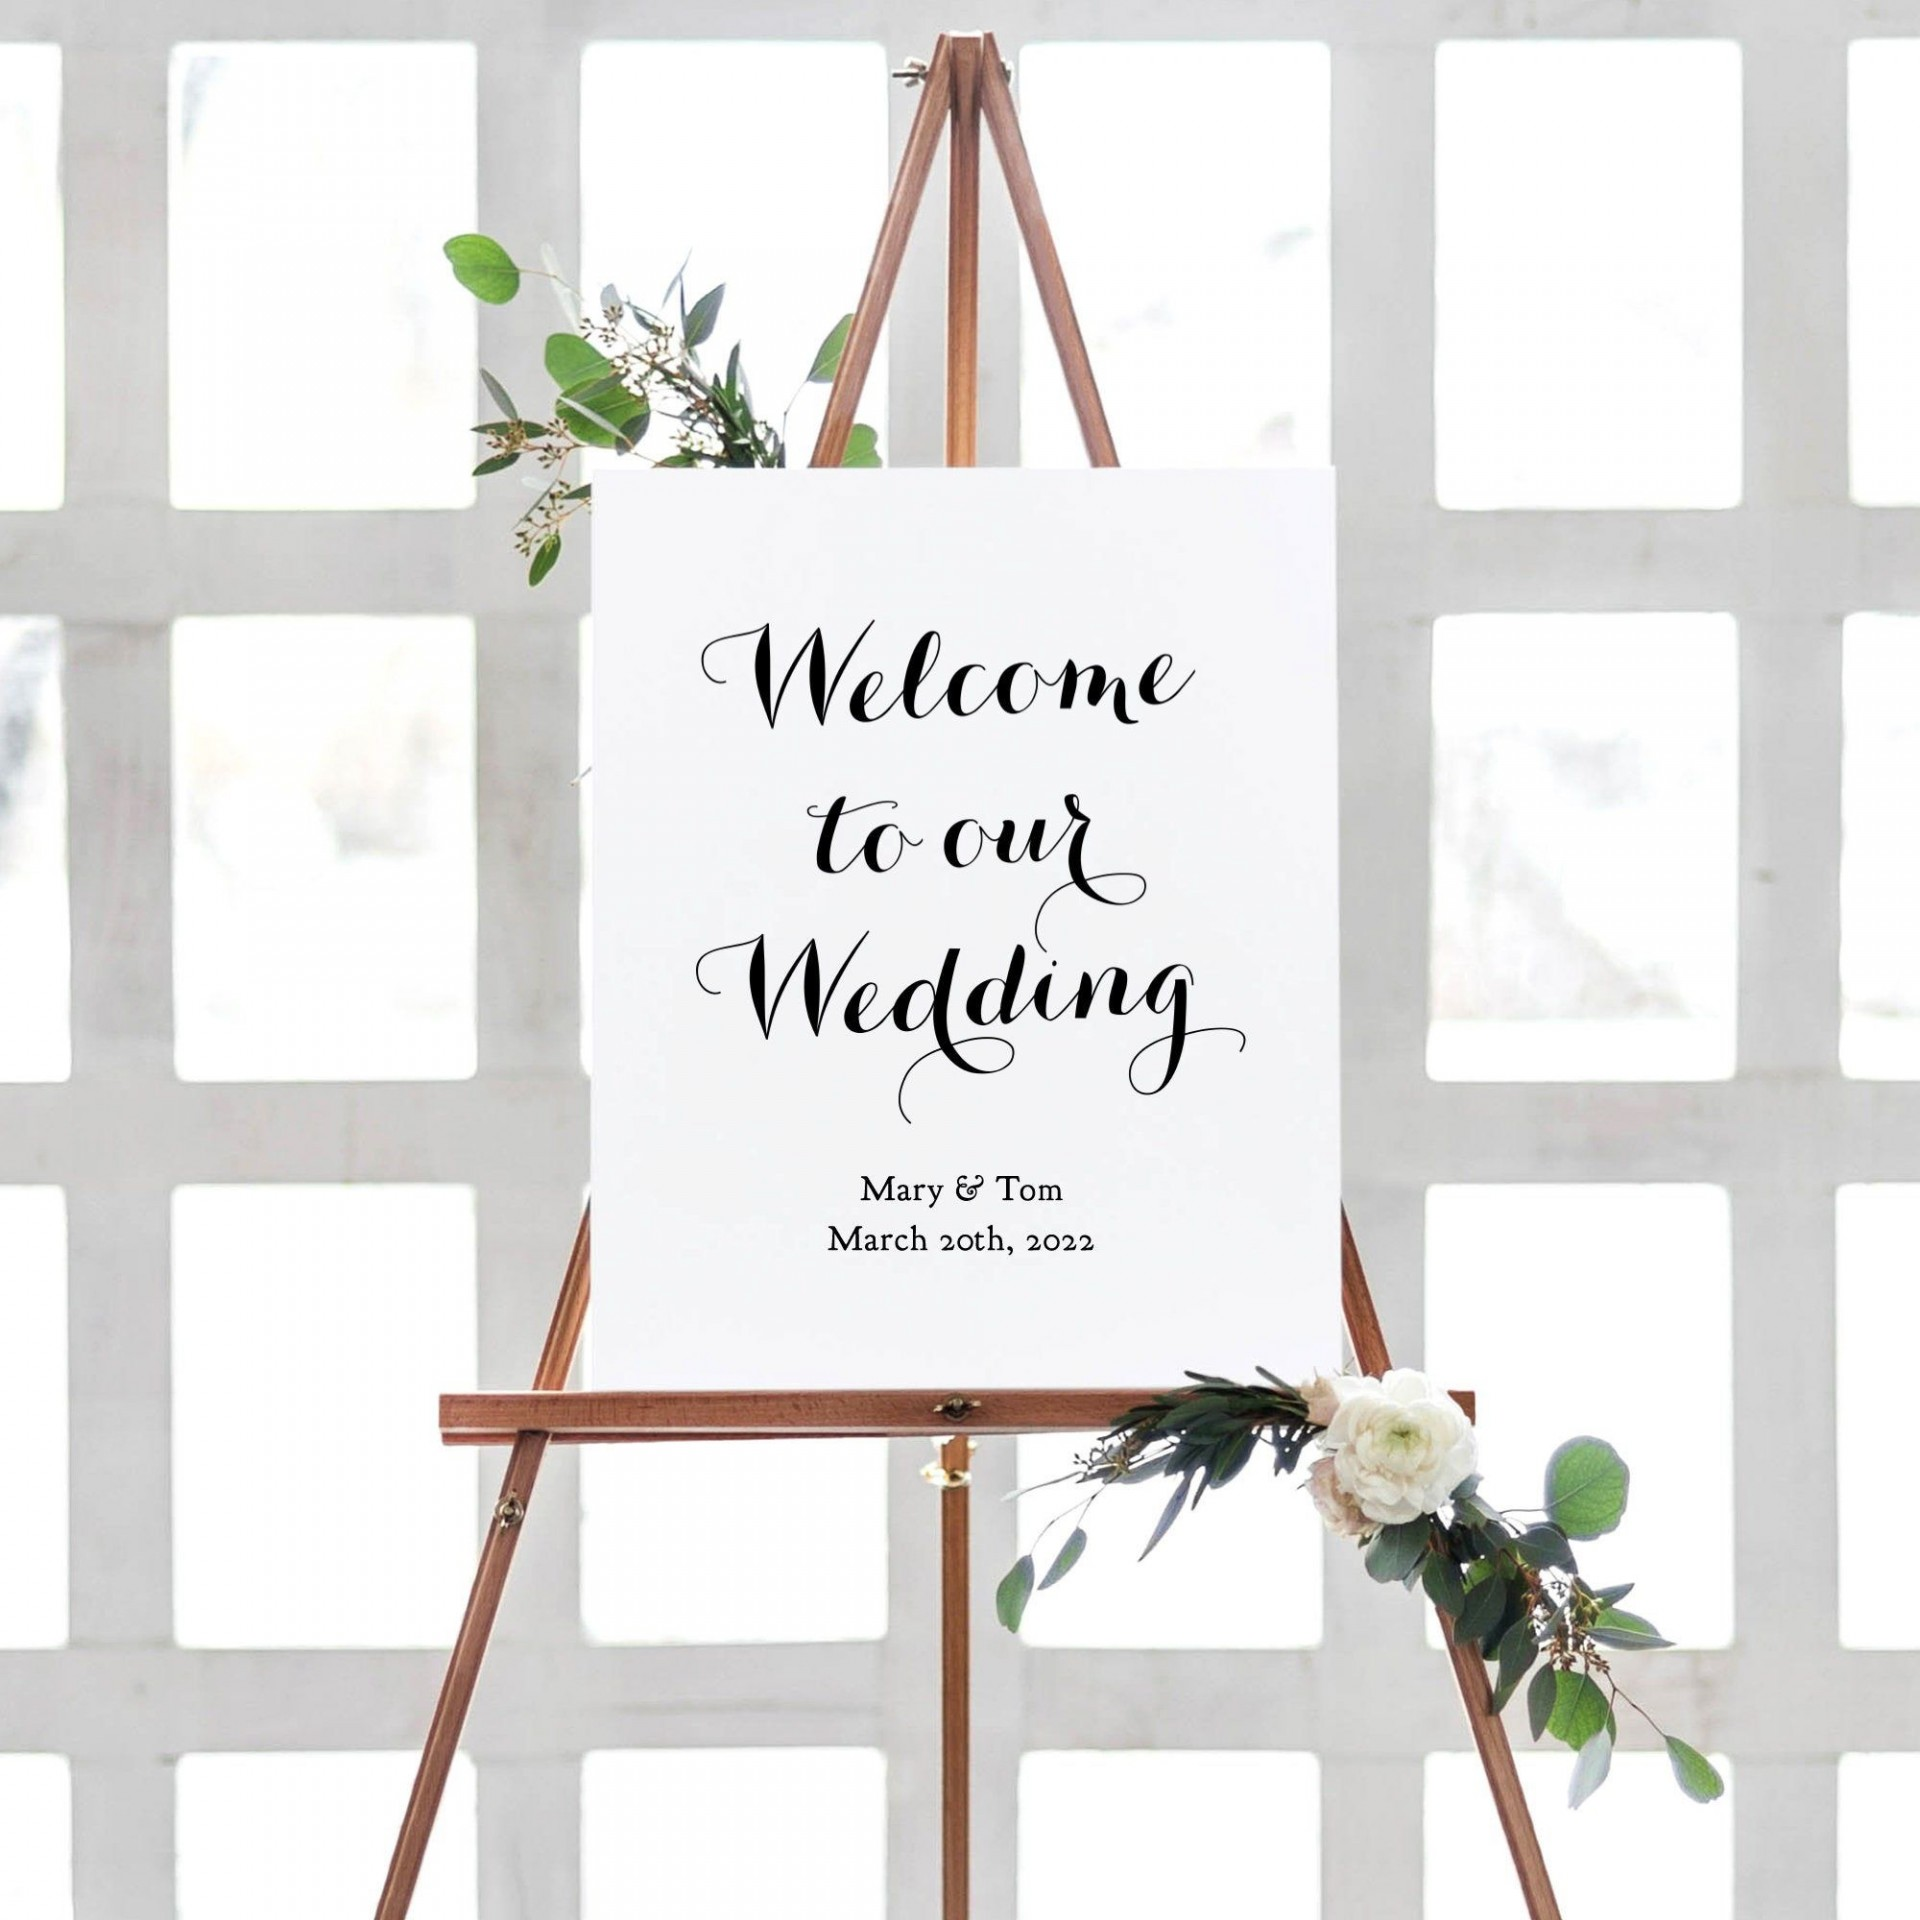 011 Unforgettable Wedding Welcome Sign Template Free Highest Clarity 1920